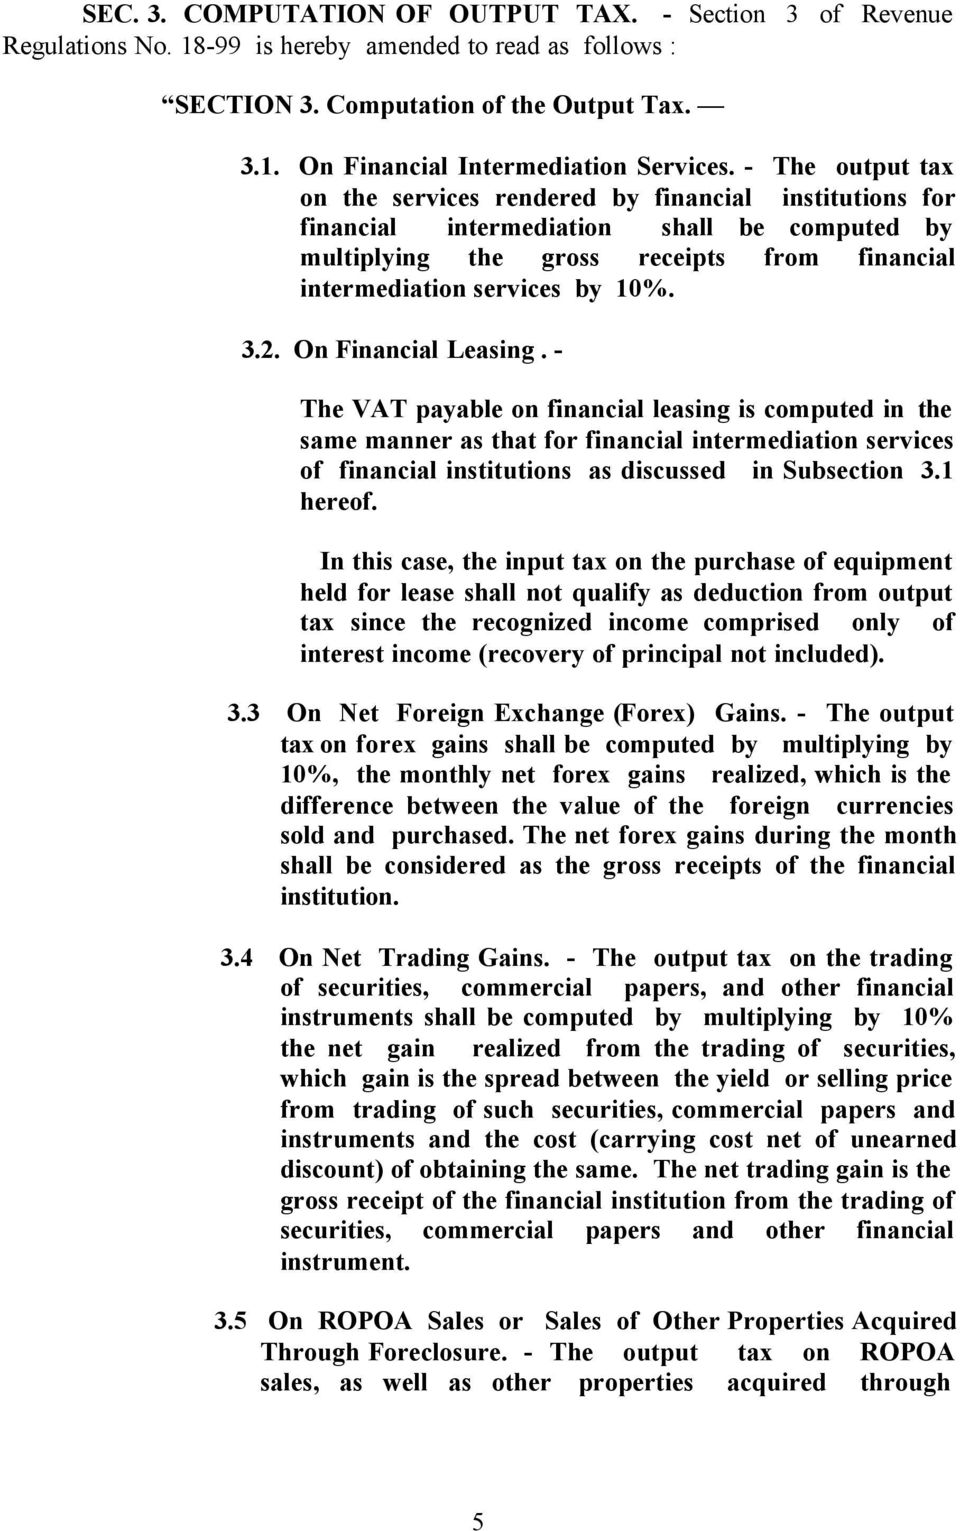 On Financial Leasing. - The VAT payable on financial leasing is computed in the same manner as that for financial intermediation services of financial institutions as discussed in Subsection 3.